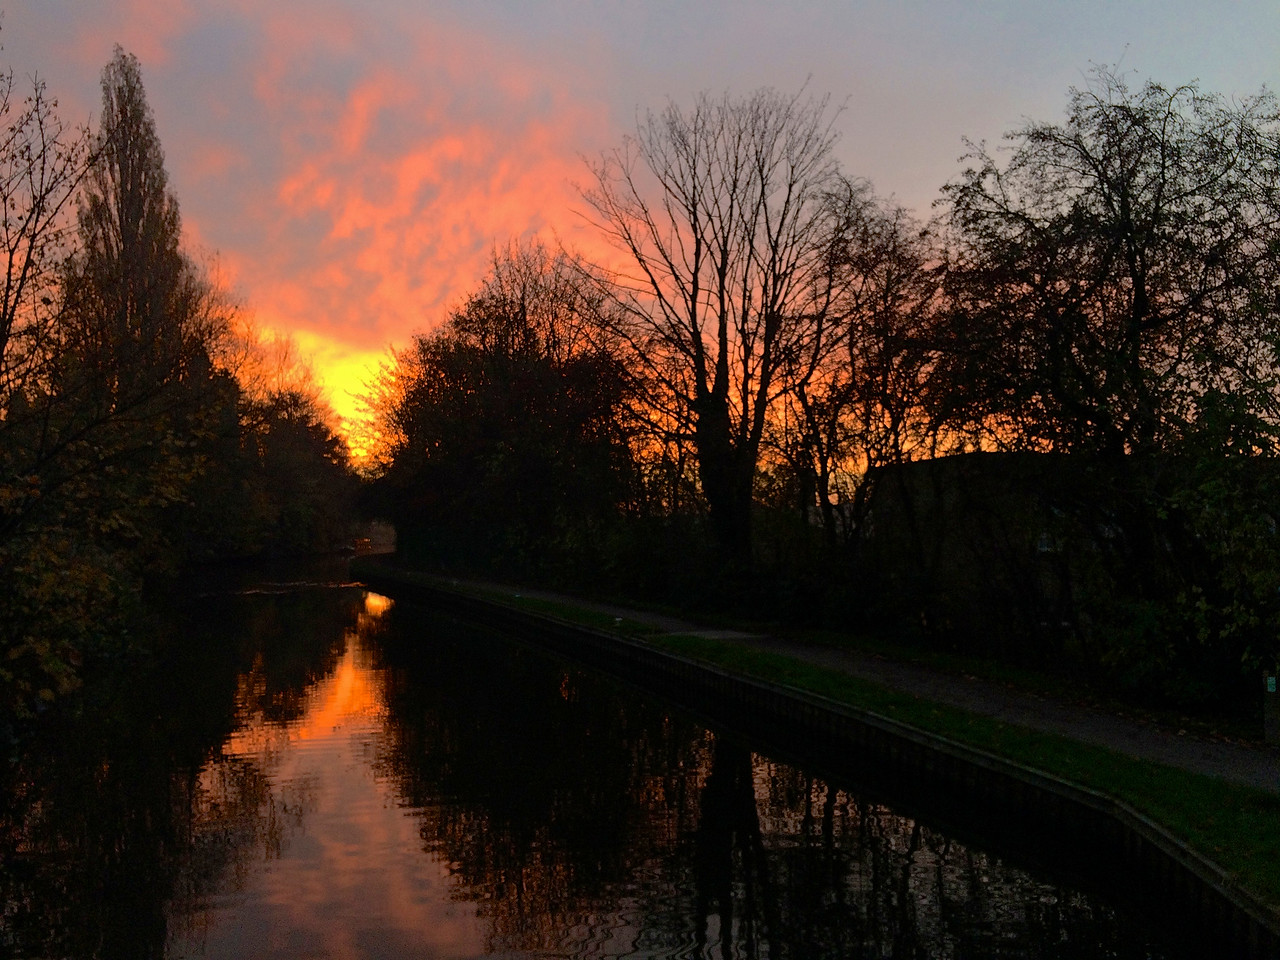 Sunrise at Riddlesden – red sky in the morning